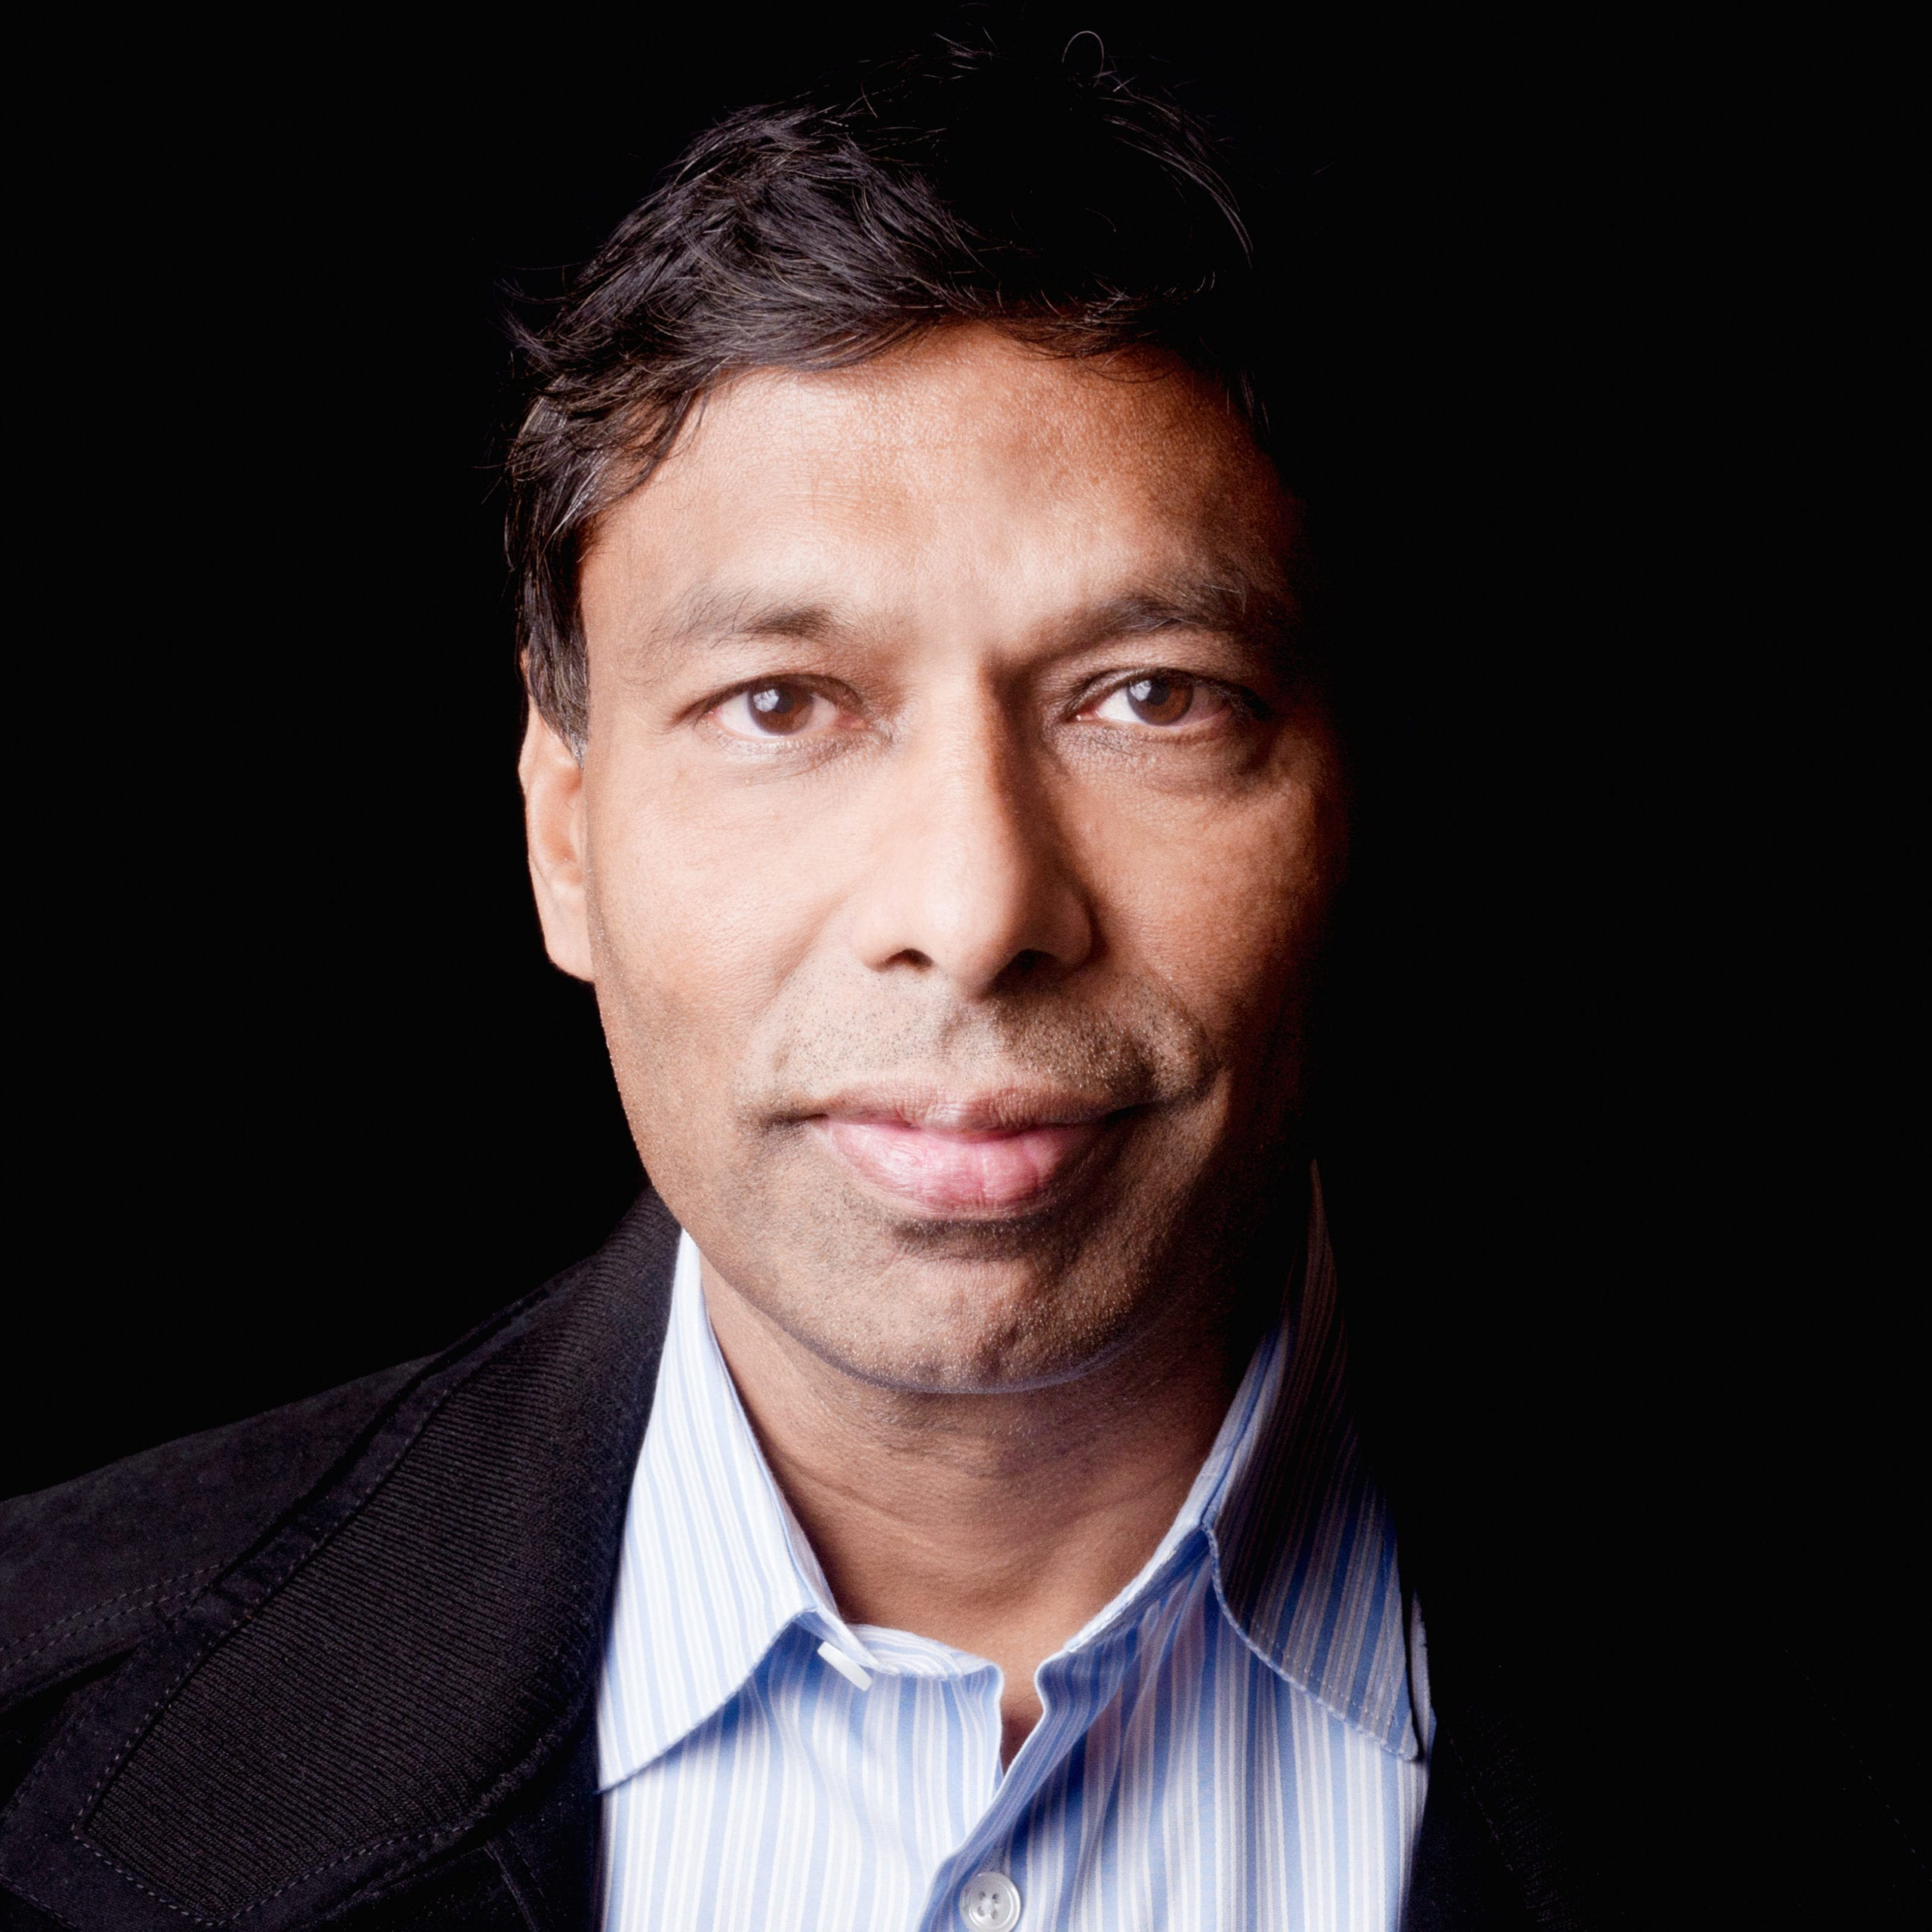 Naveen Jain photographed by Kevin Abosch